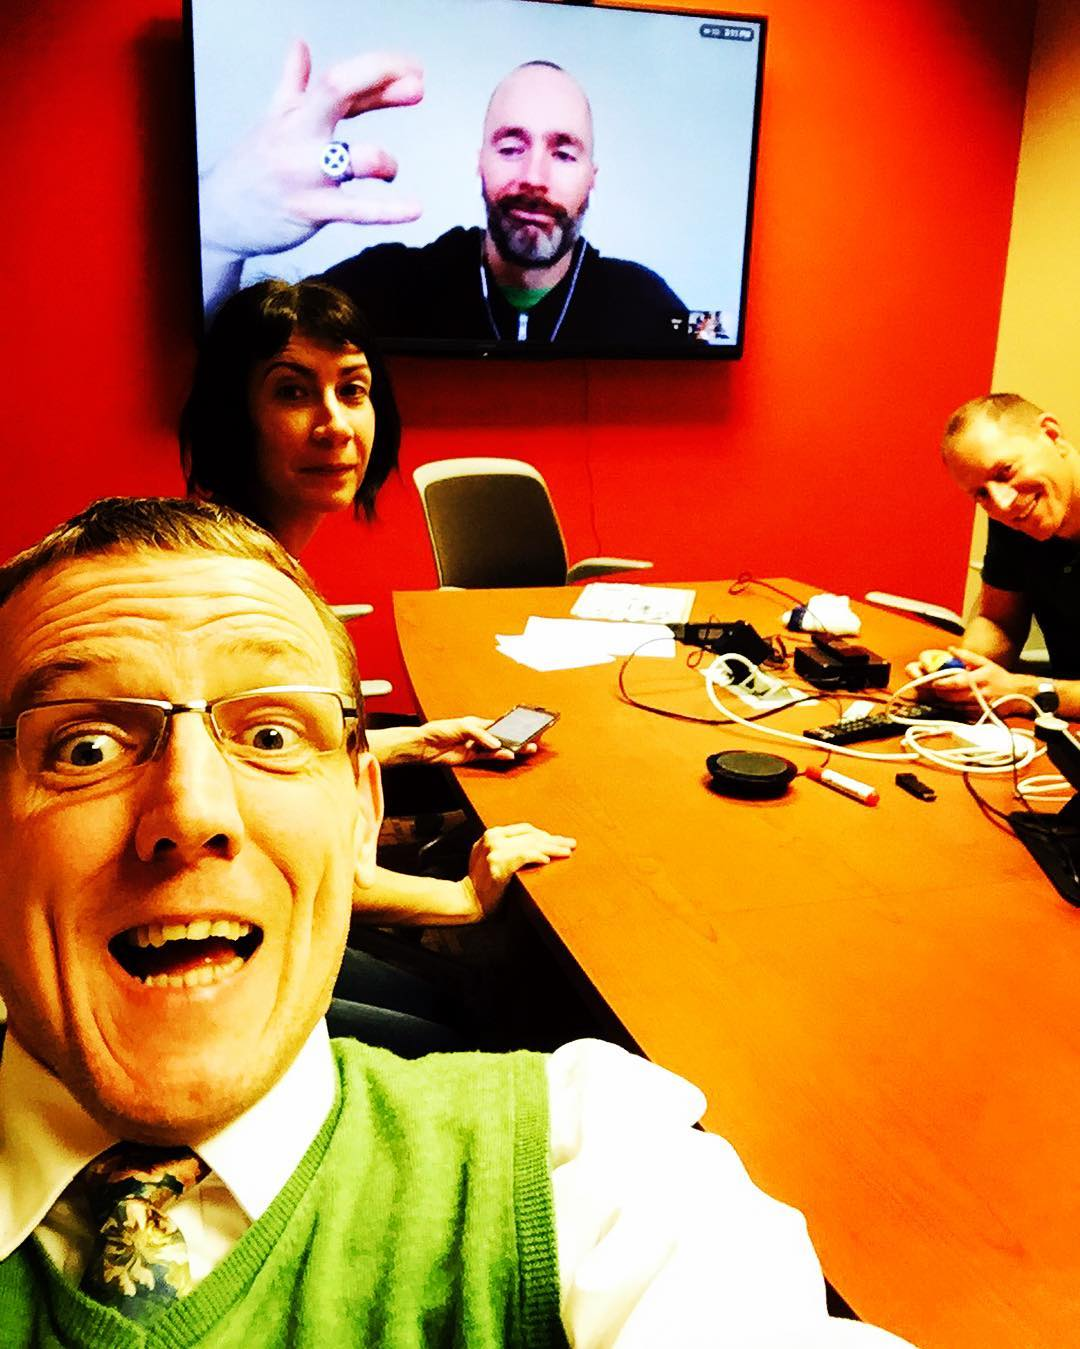 Awesome #tiedayfriday #edtech meet with @hummer645 @sundilu and Brian Brown @stnorbert